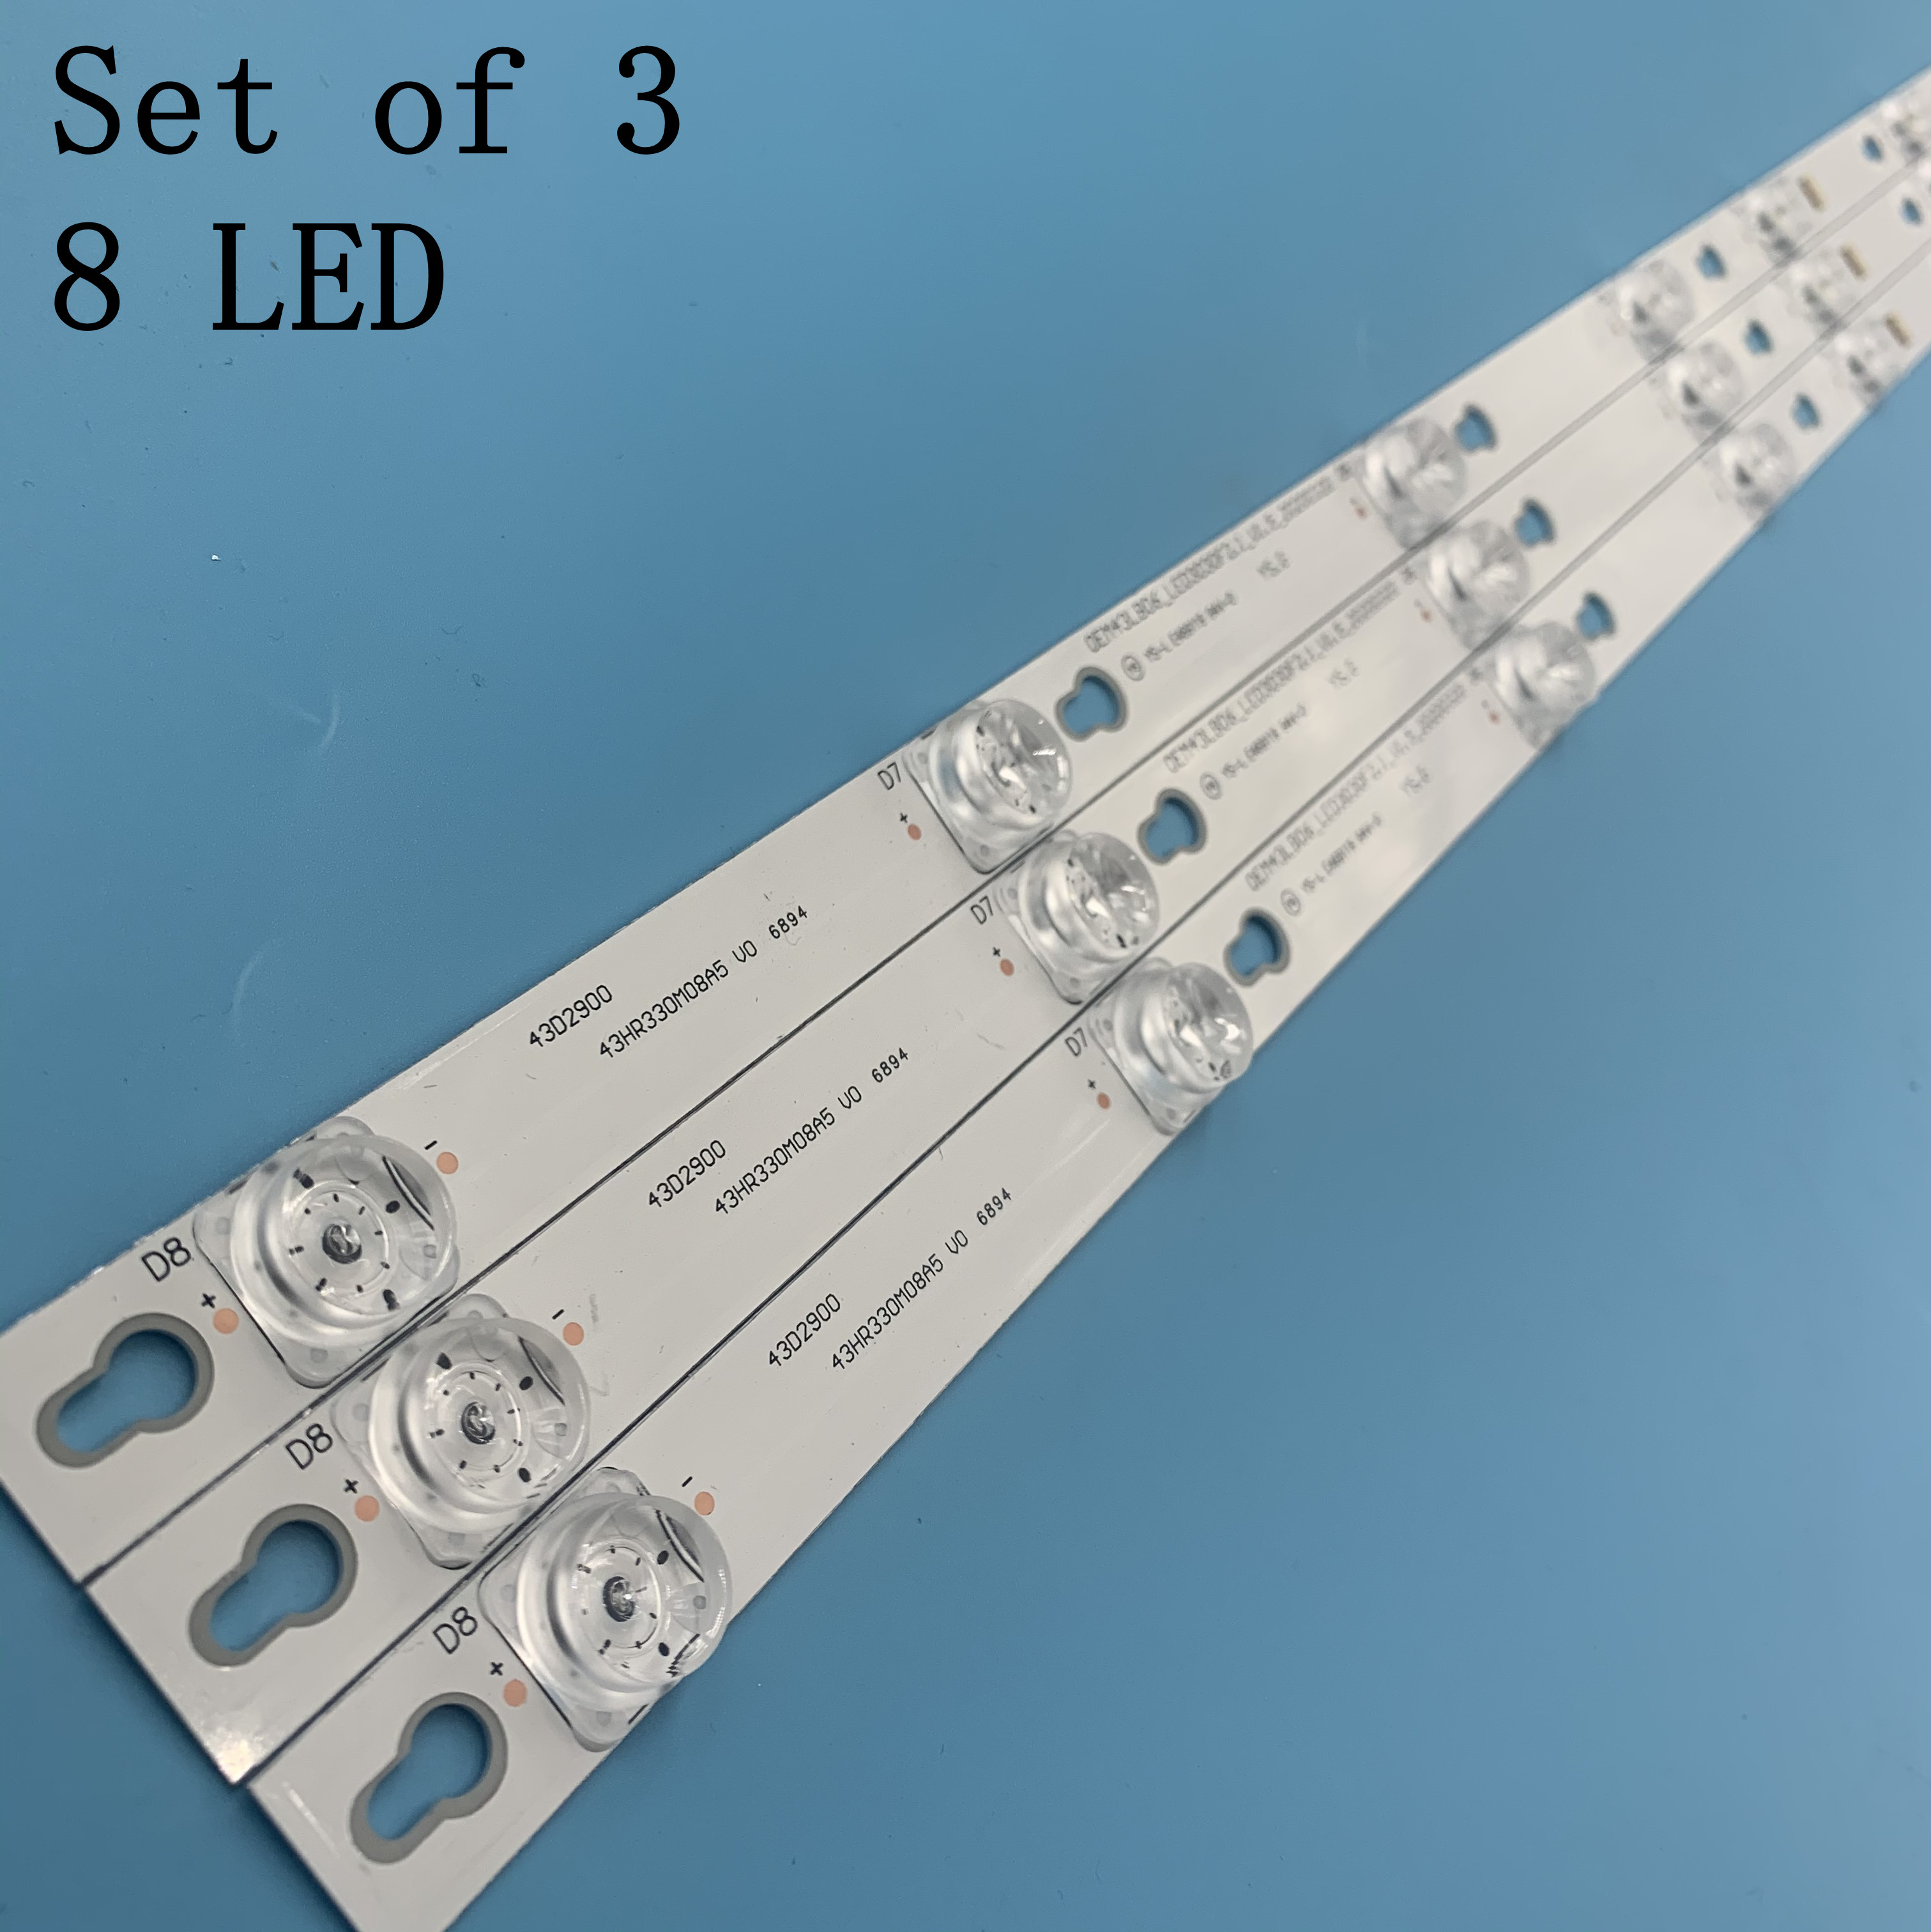 TCL D43A810 Strip 43HR330M08A2 V5 43D2900 4C-LB4308-HR02J Recess Lights